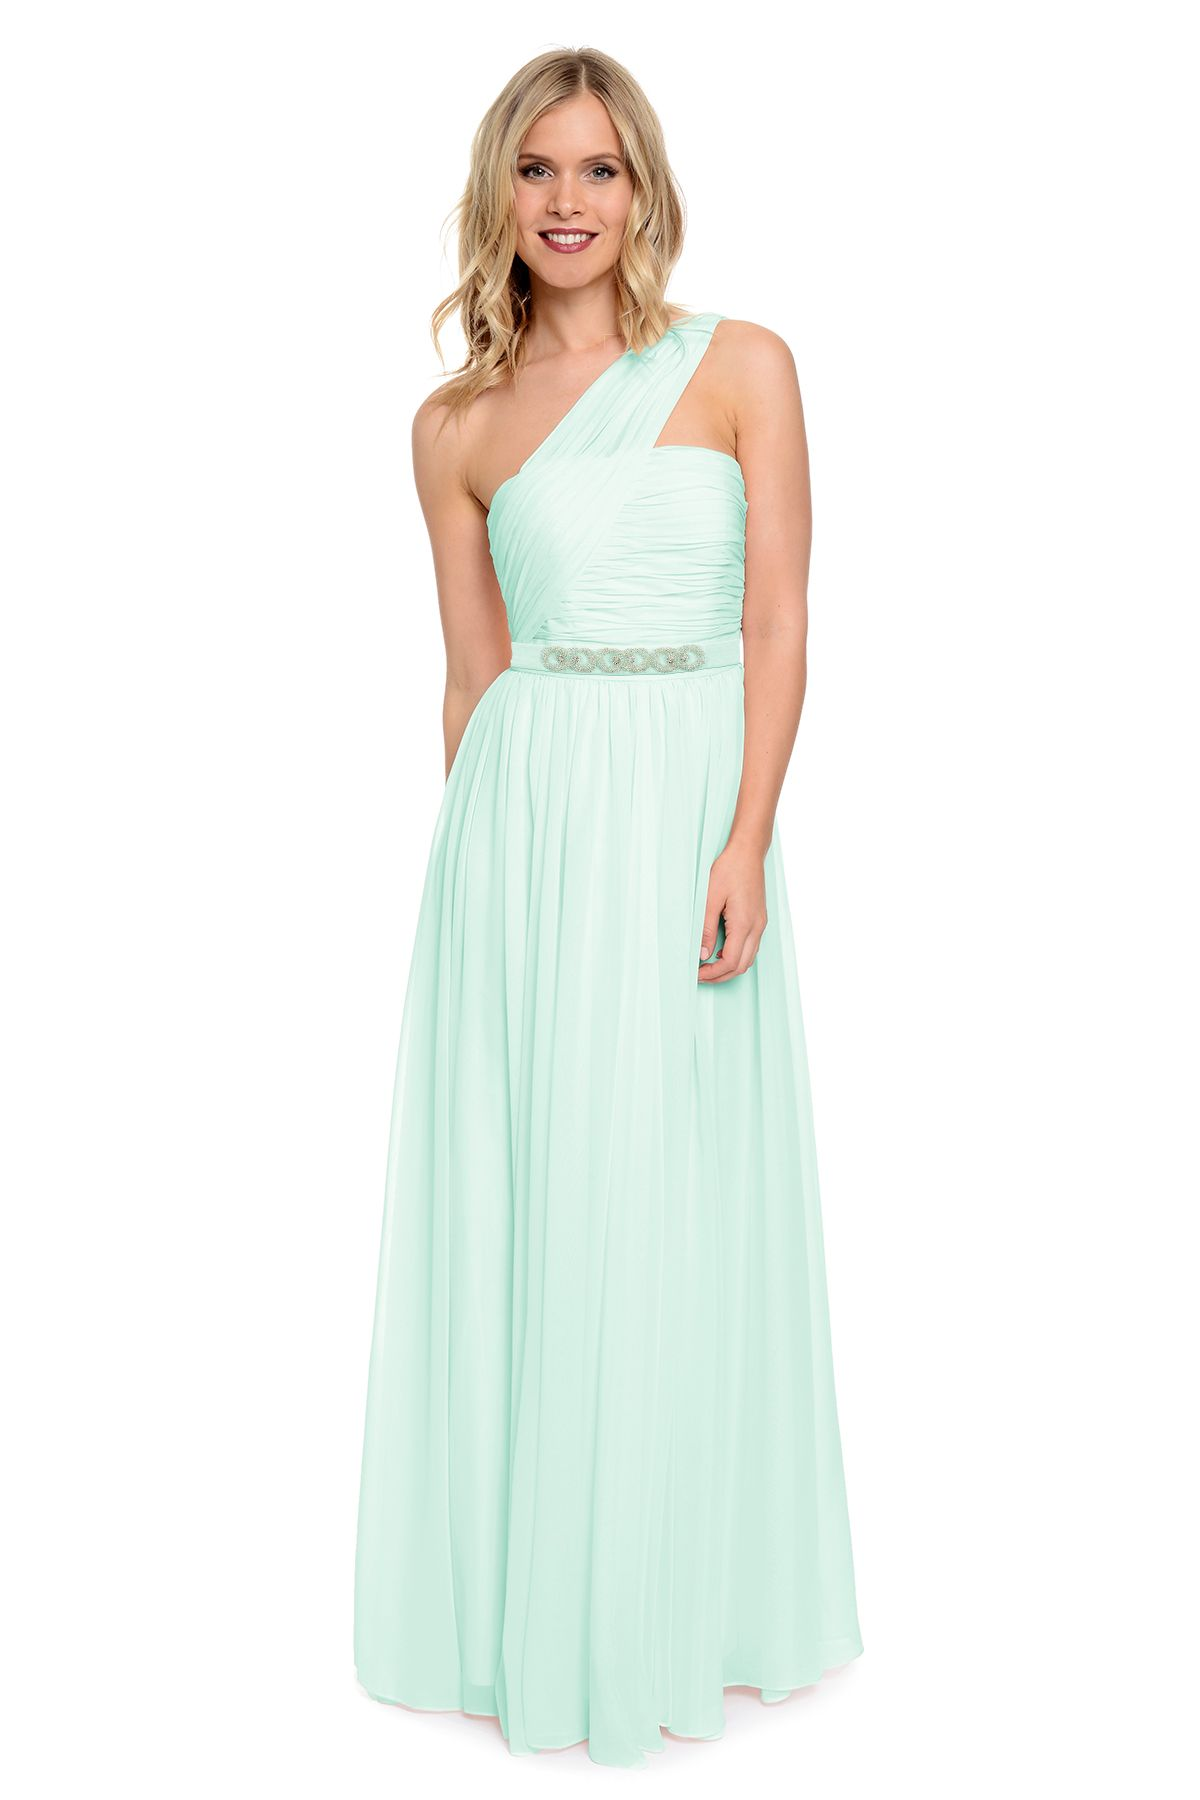 Seraphina dahlia bridal parties and party fashion seraphina wedding dress ombrellifo Images